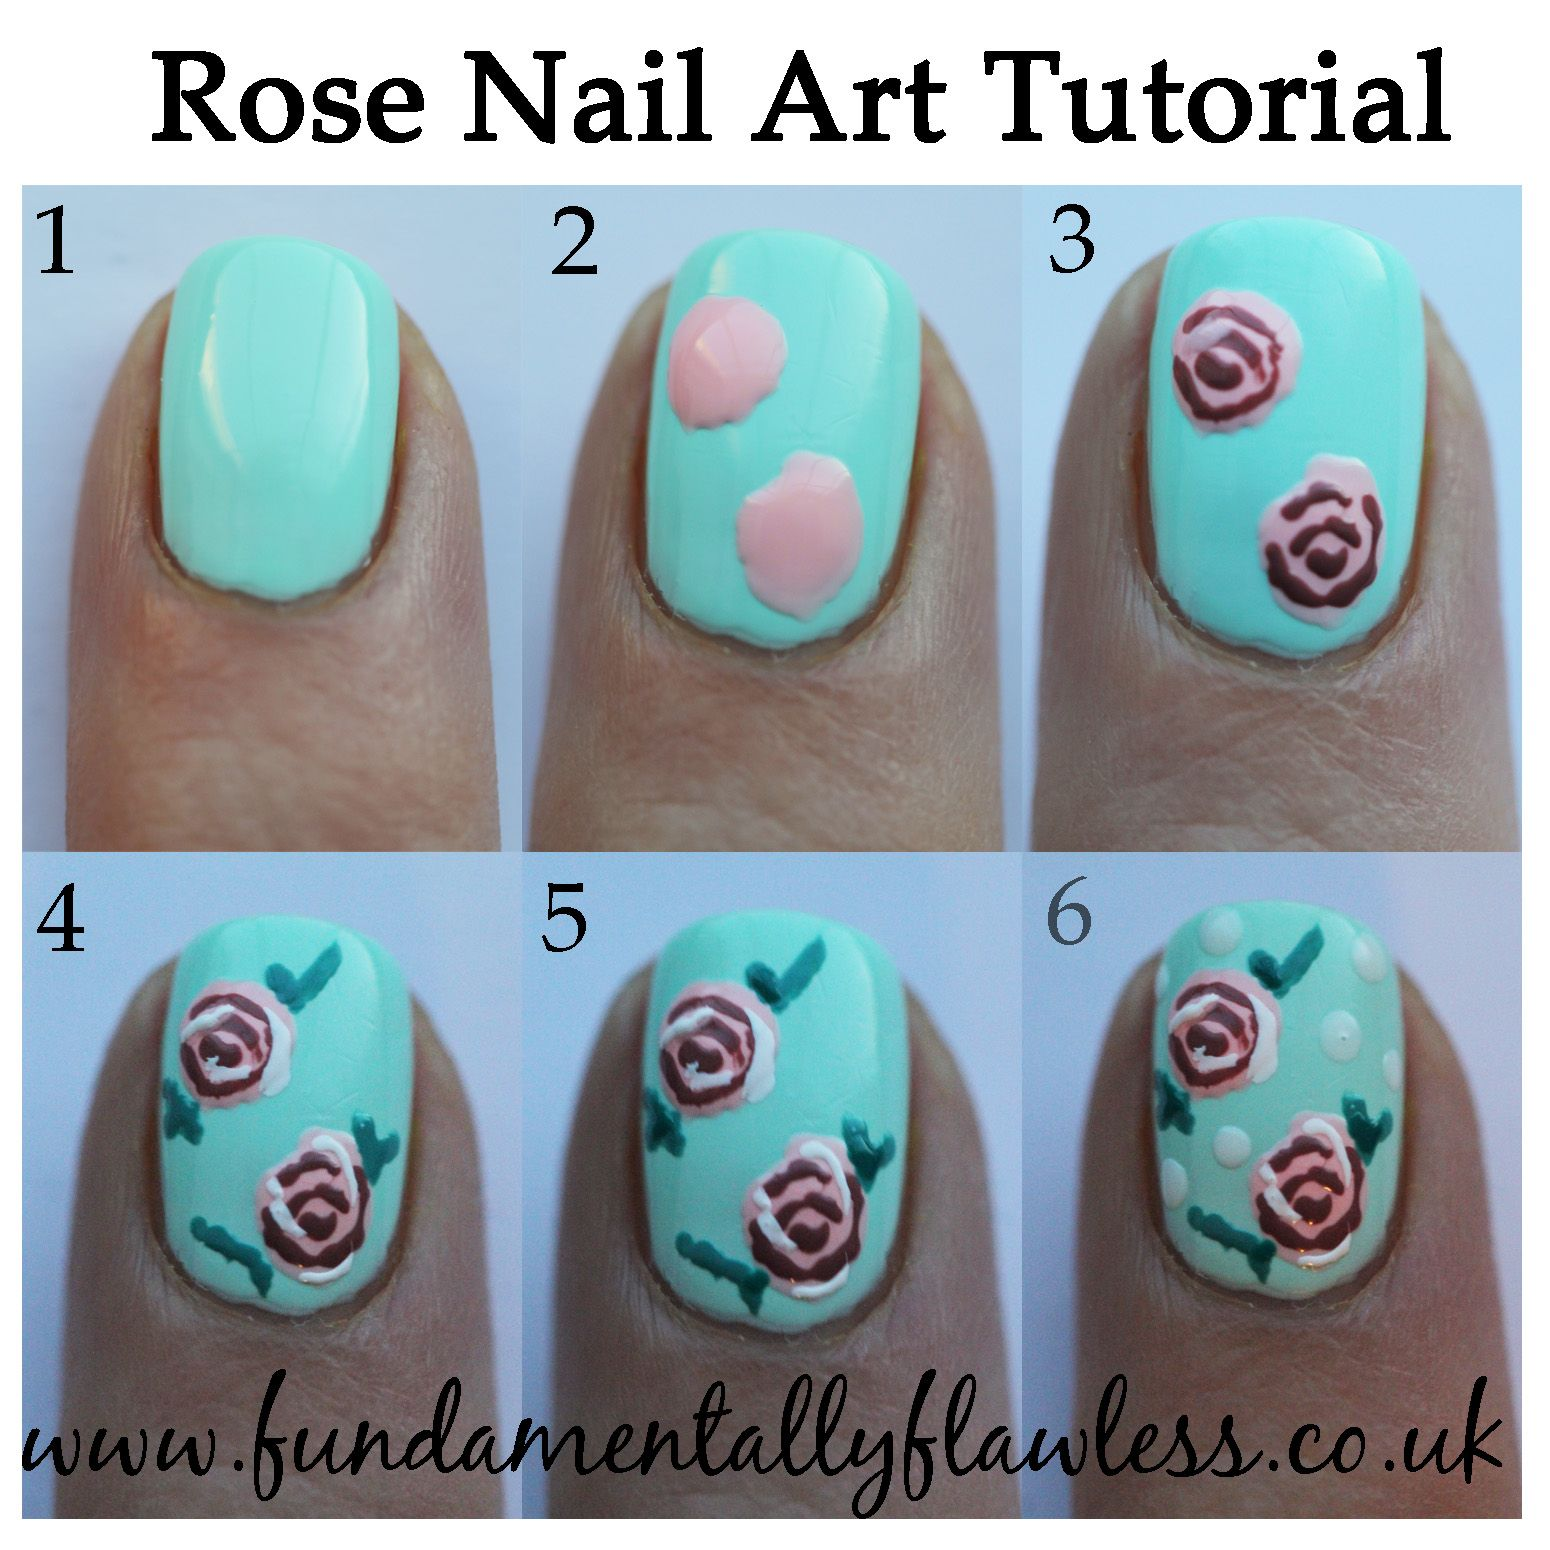 Nail Arts By Rozemist Cath Kidston Vintage Inspired: Rose Nail Art Tutorial